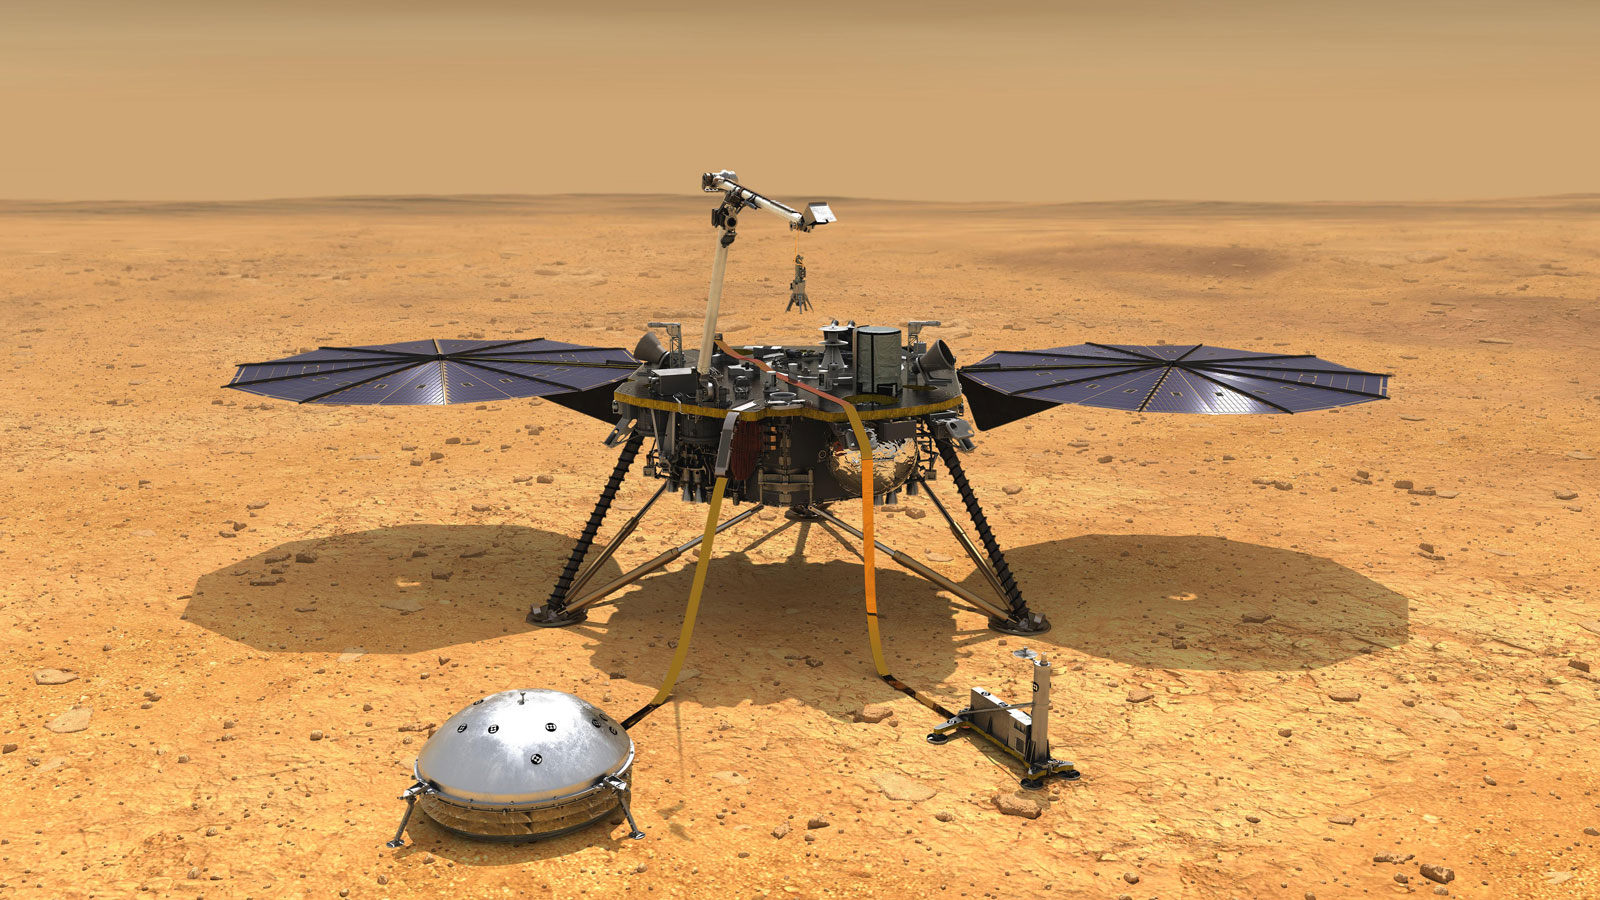 InSight's seismometers are potentially sensitive enough to detect Perseverance's landing, even though this is expected to be very challenging - given the significant distance between the two landing sites. It is around the same distance as from London to